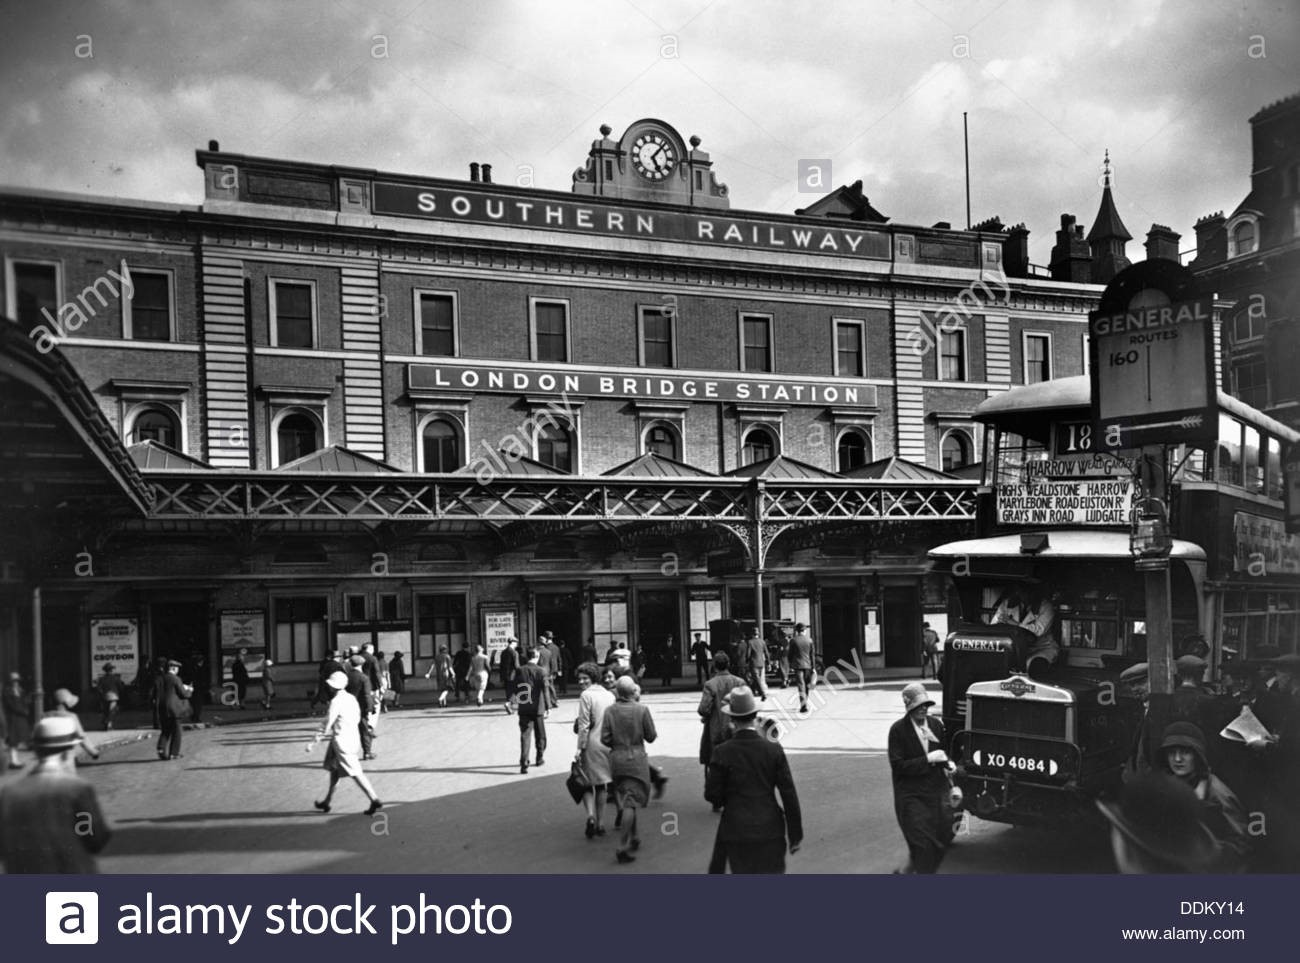 London Bridge Station, Southwark, London, c1930.jpg